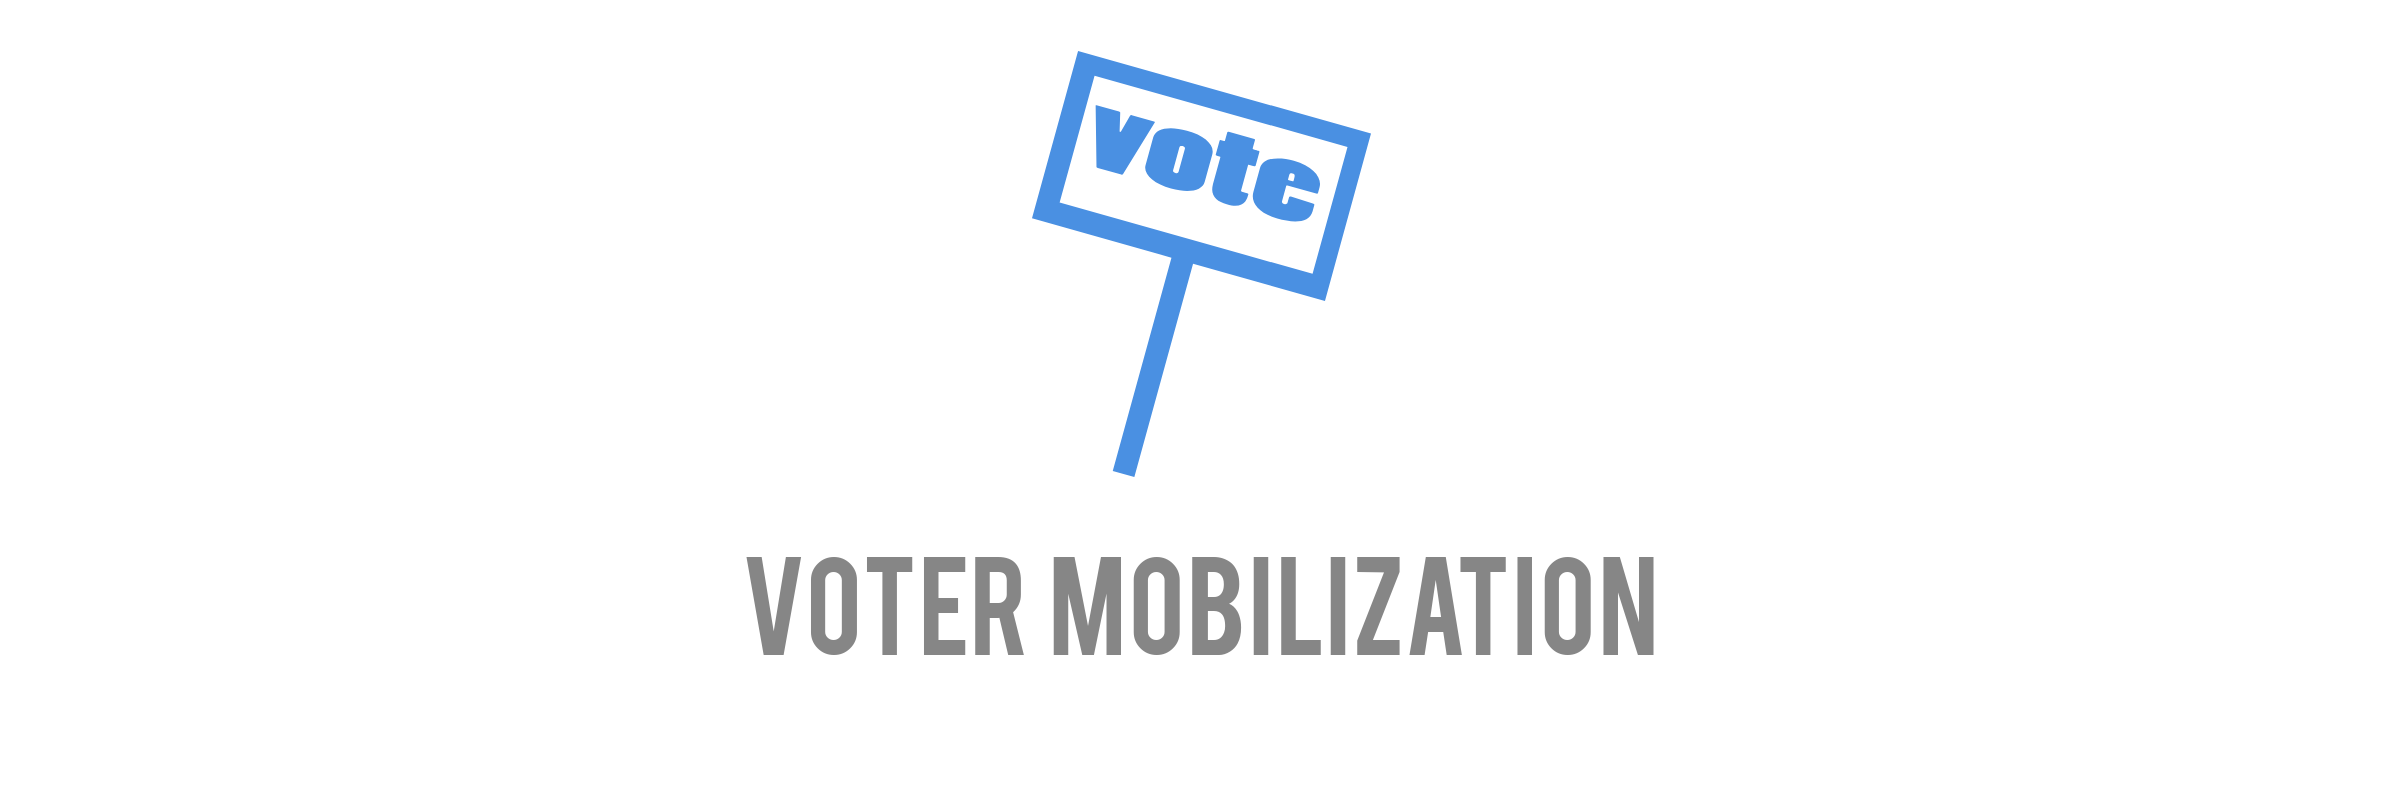 voter-mobilization-icon.png